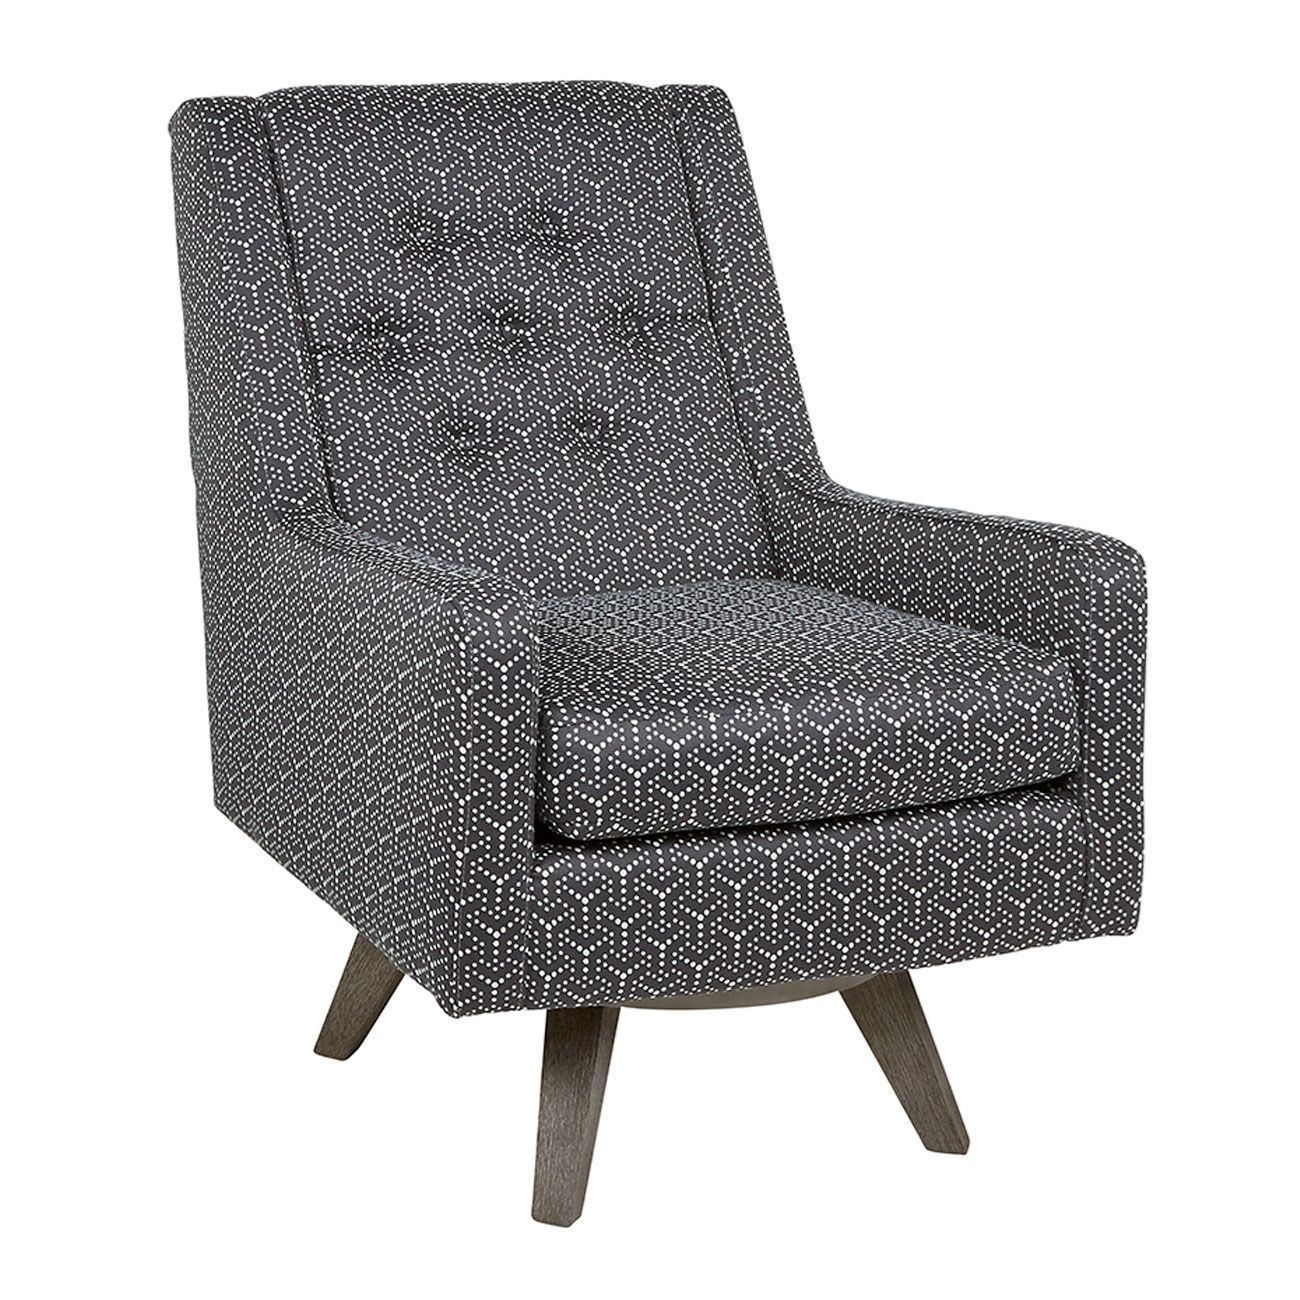 Kale Charcoal Swivel Chair – Woodstock Furniture & Mattress For Charcoal Swivel Chairs (View 4 of 25)